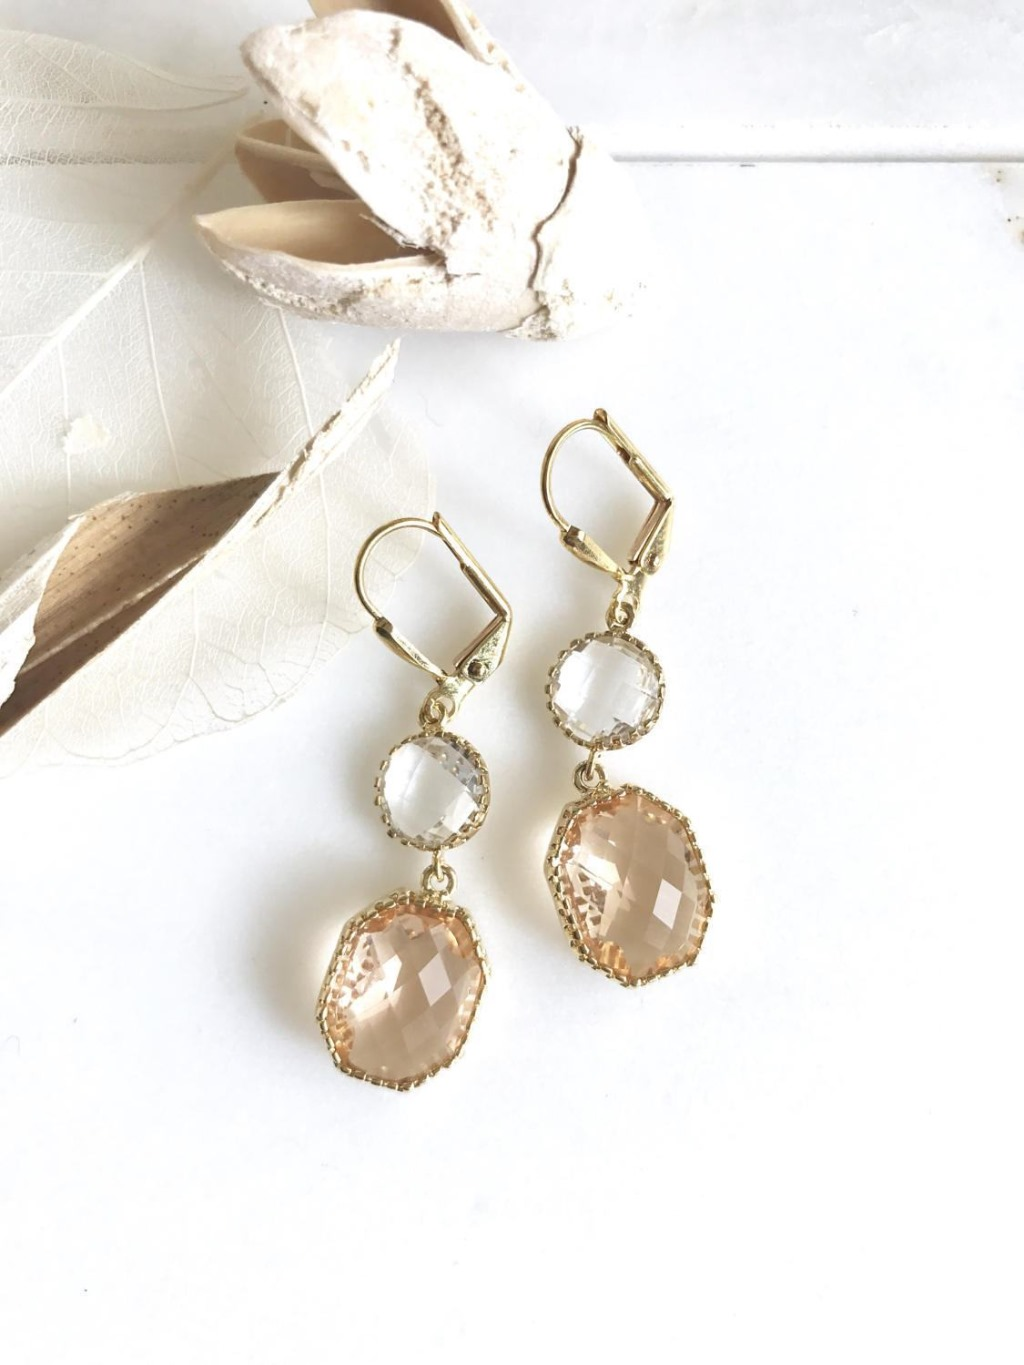 These earrings are lovely and feminine and just stunning. The unique faceting on the champagne pendant is truly gorgeous.